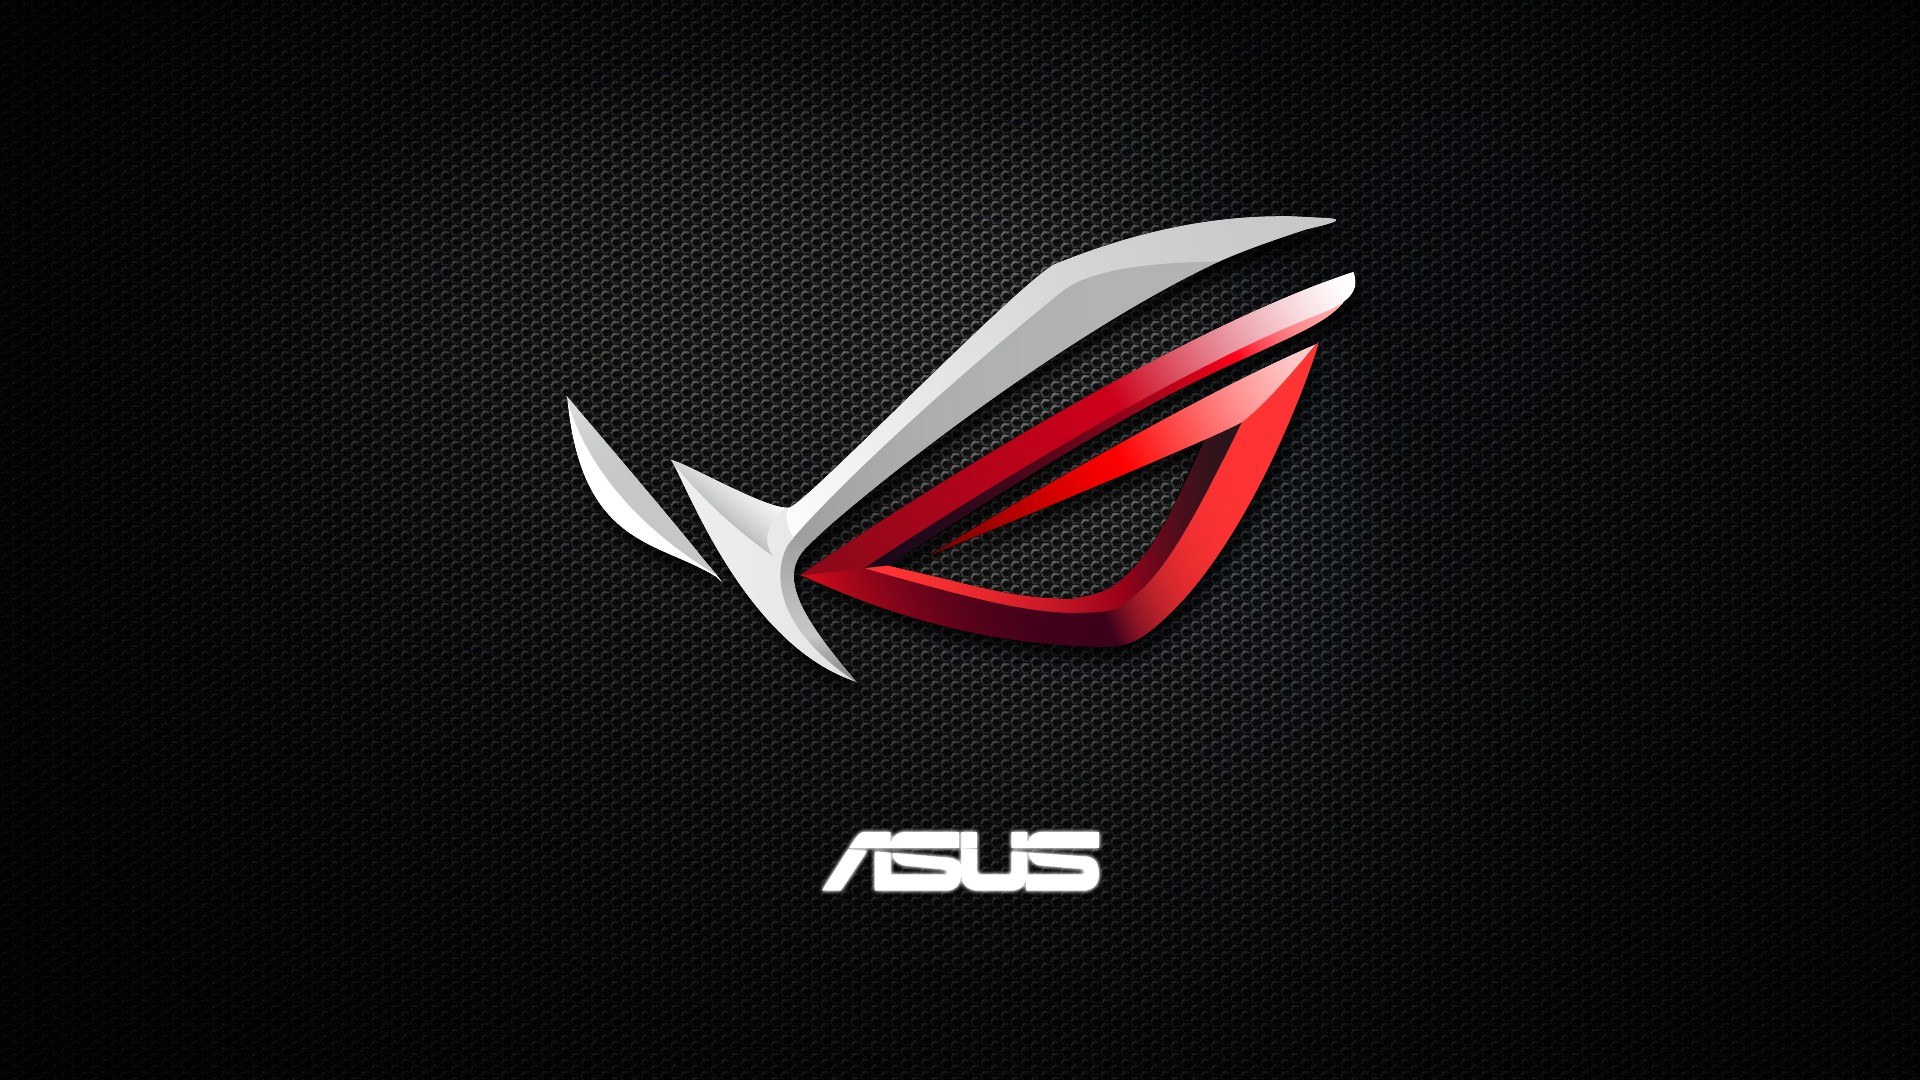 HQ Asus Wallpapers | File 524.44Kb